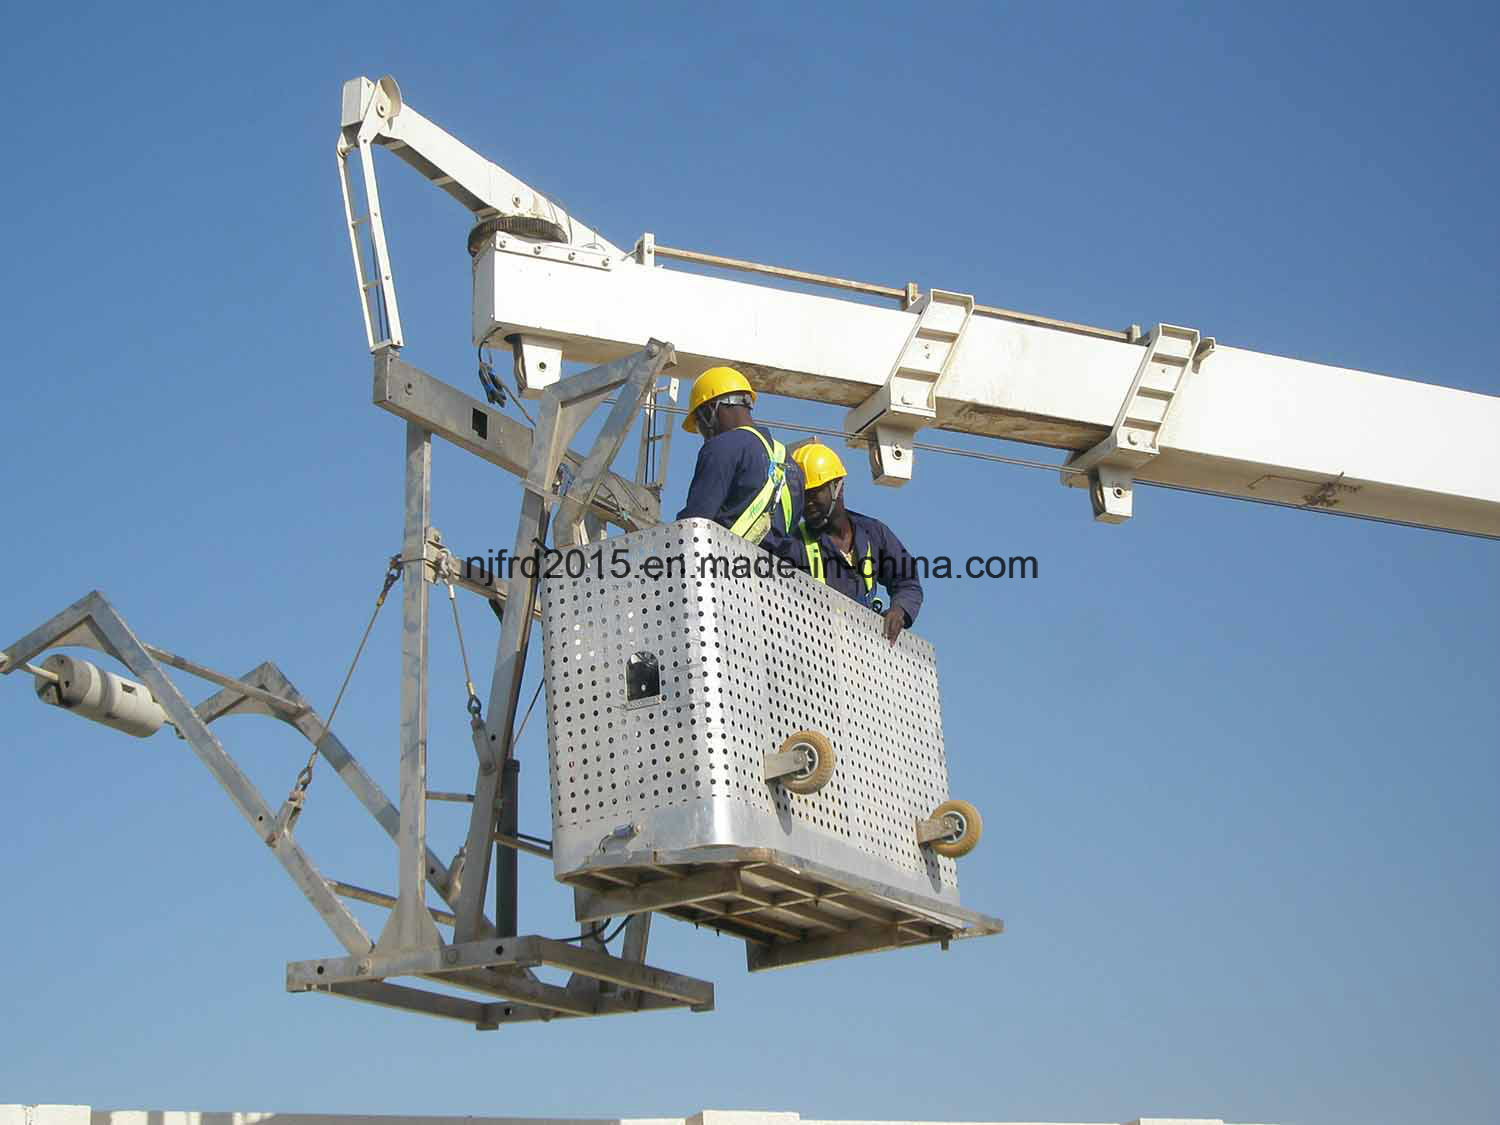 Nfsa Models Telescopic Jib Building Maintenance Units Bmu